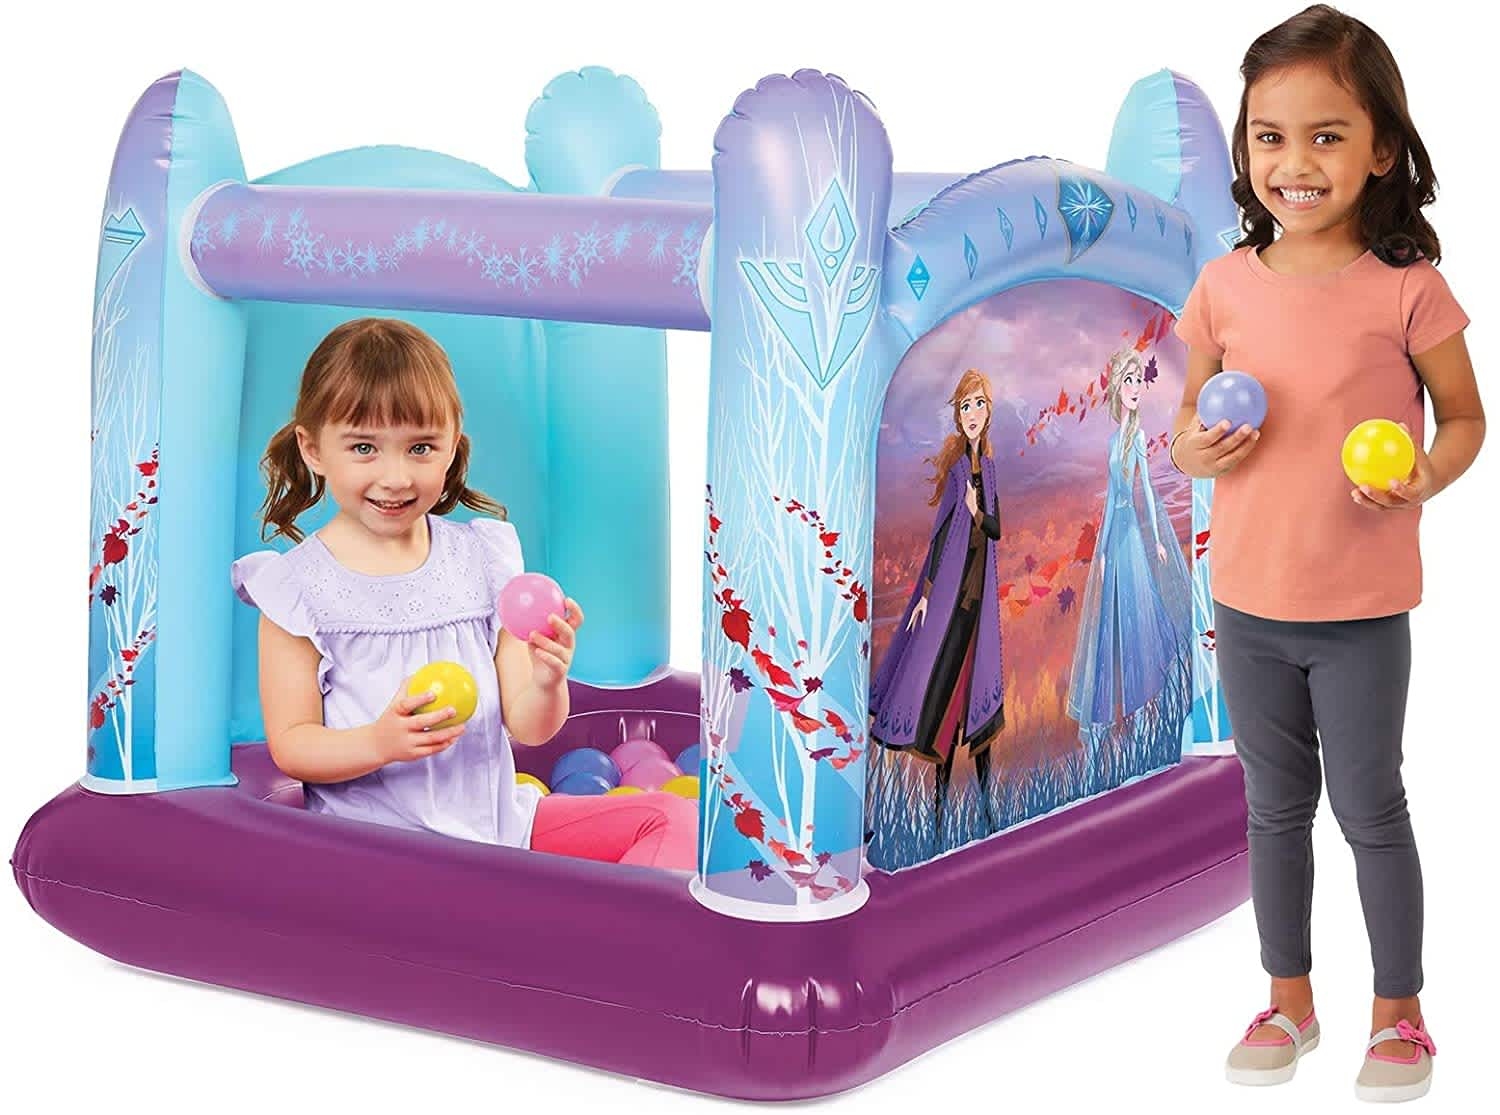 Princess Toys & Accessories at Amazon